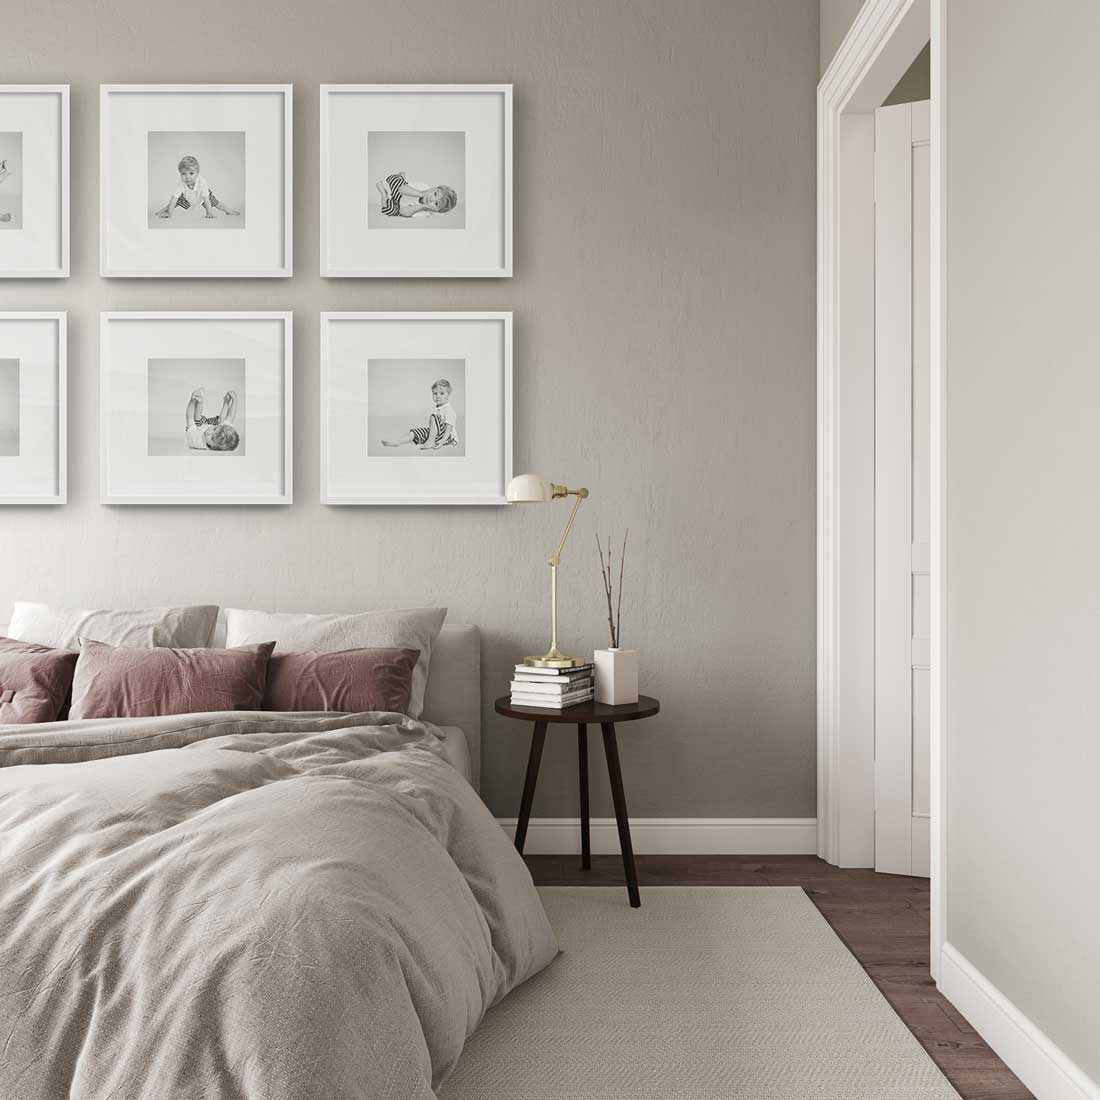 Six of our small Square framed prints in your bedroom